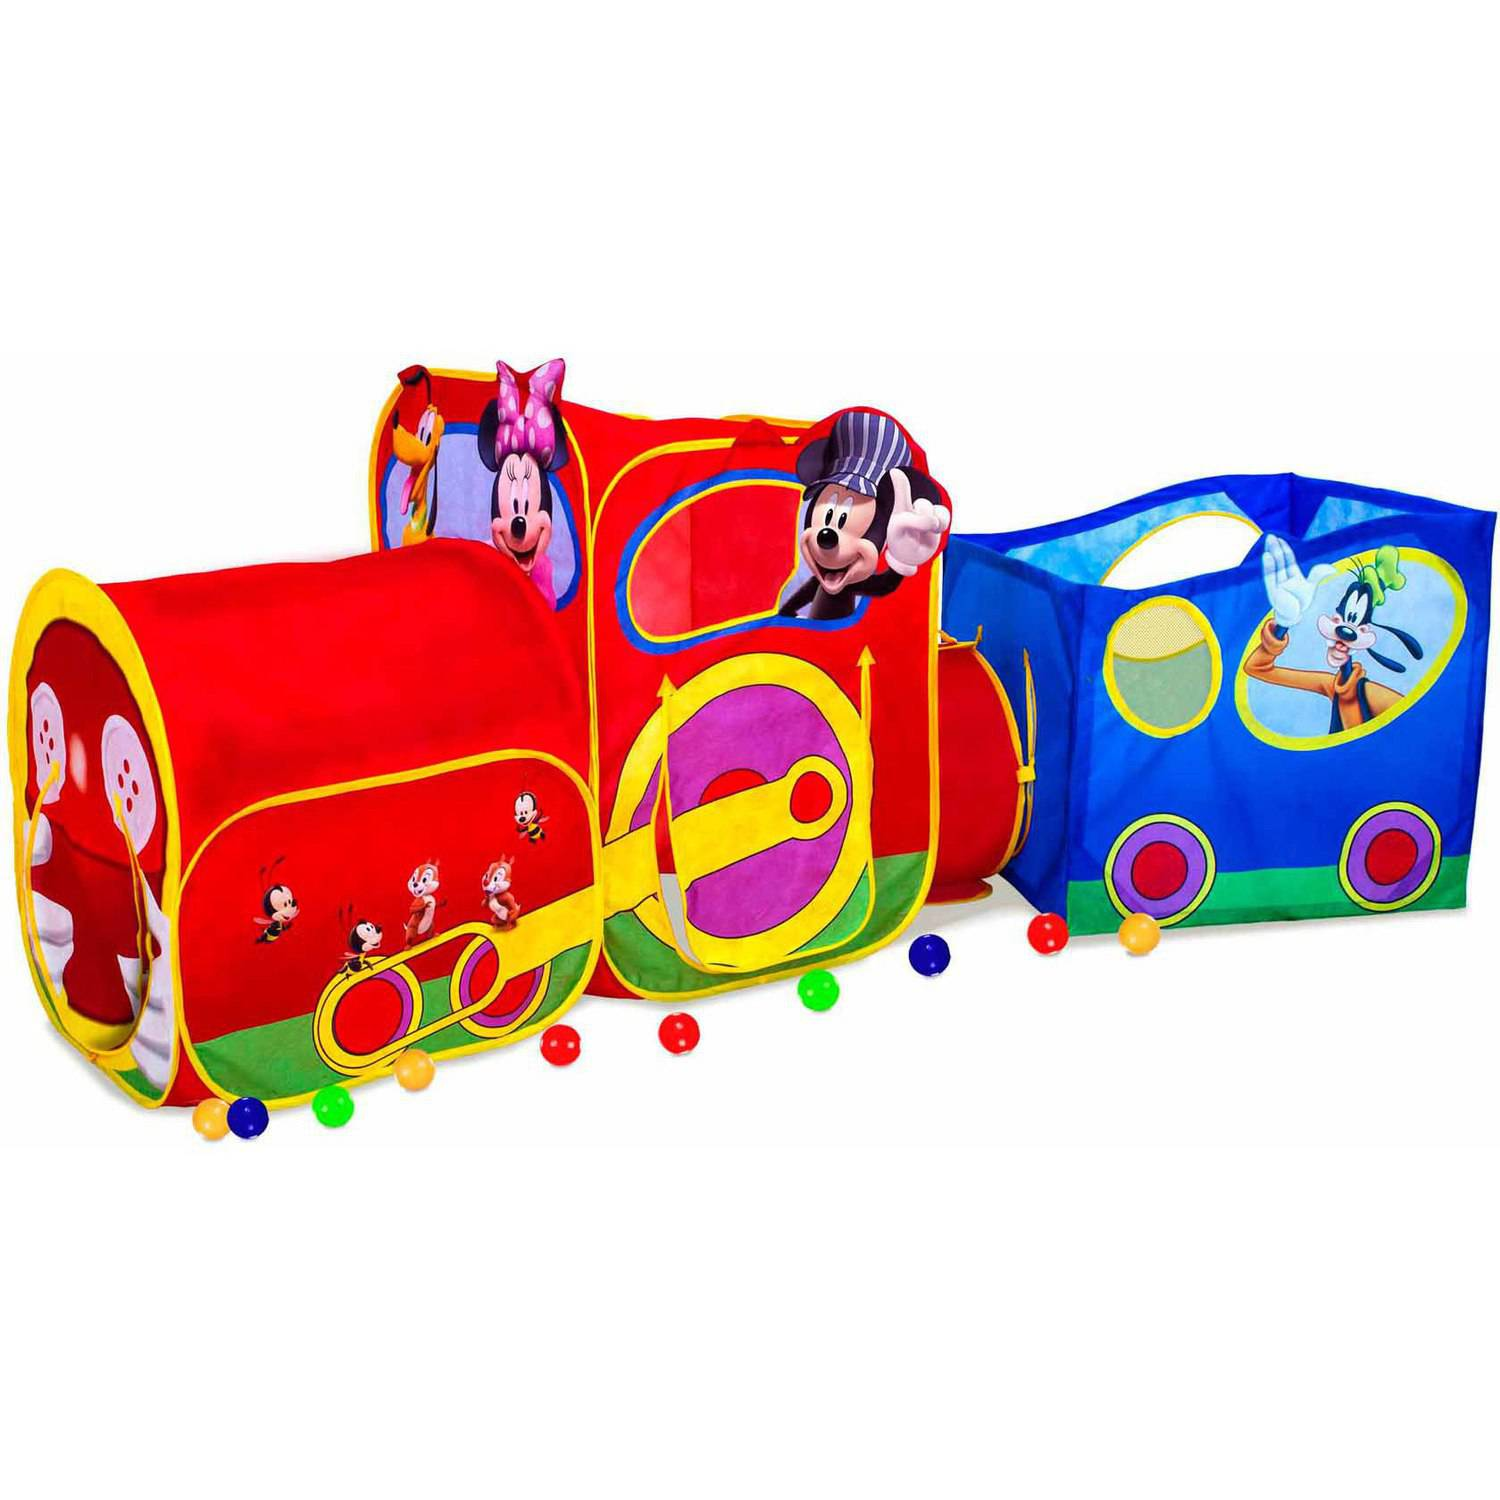 Playhut Disney Mickey Mouse Choo Choo Express Train by n/a